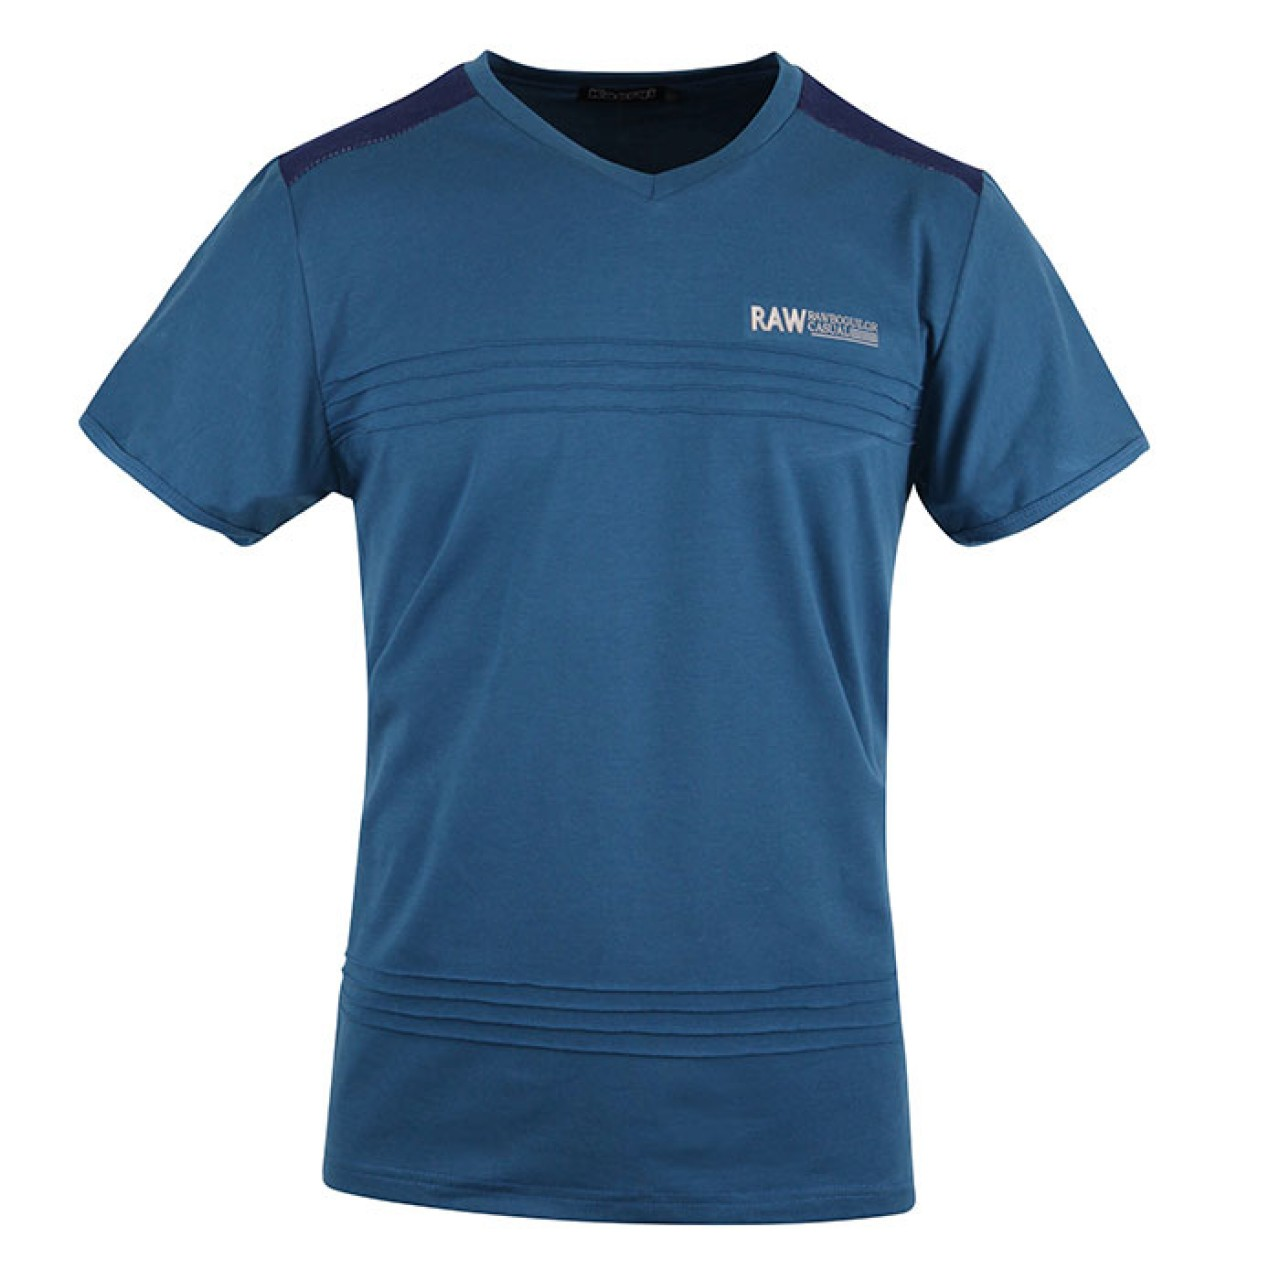 Men's Dusty Blue V-Neck Tee with Stripe at Chest